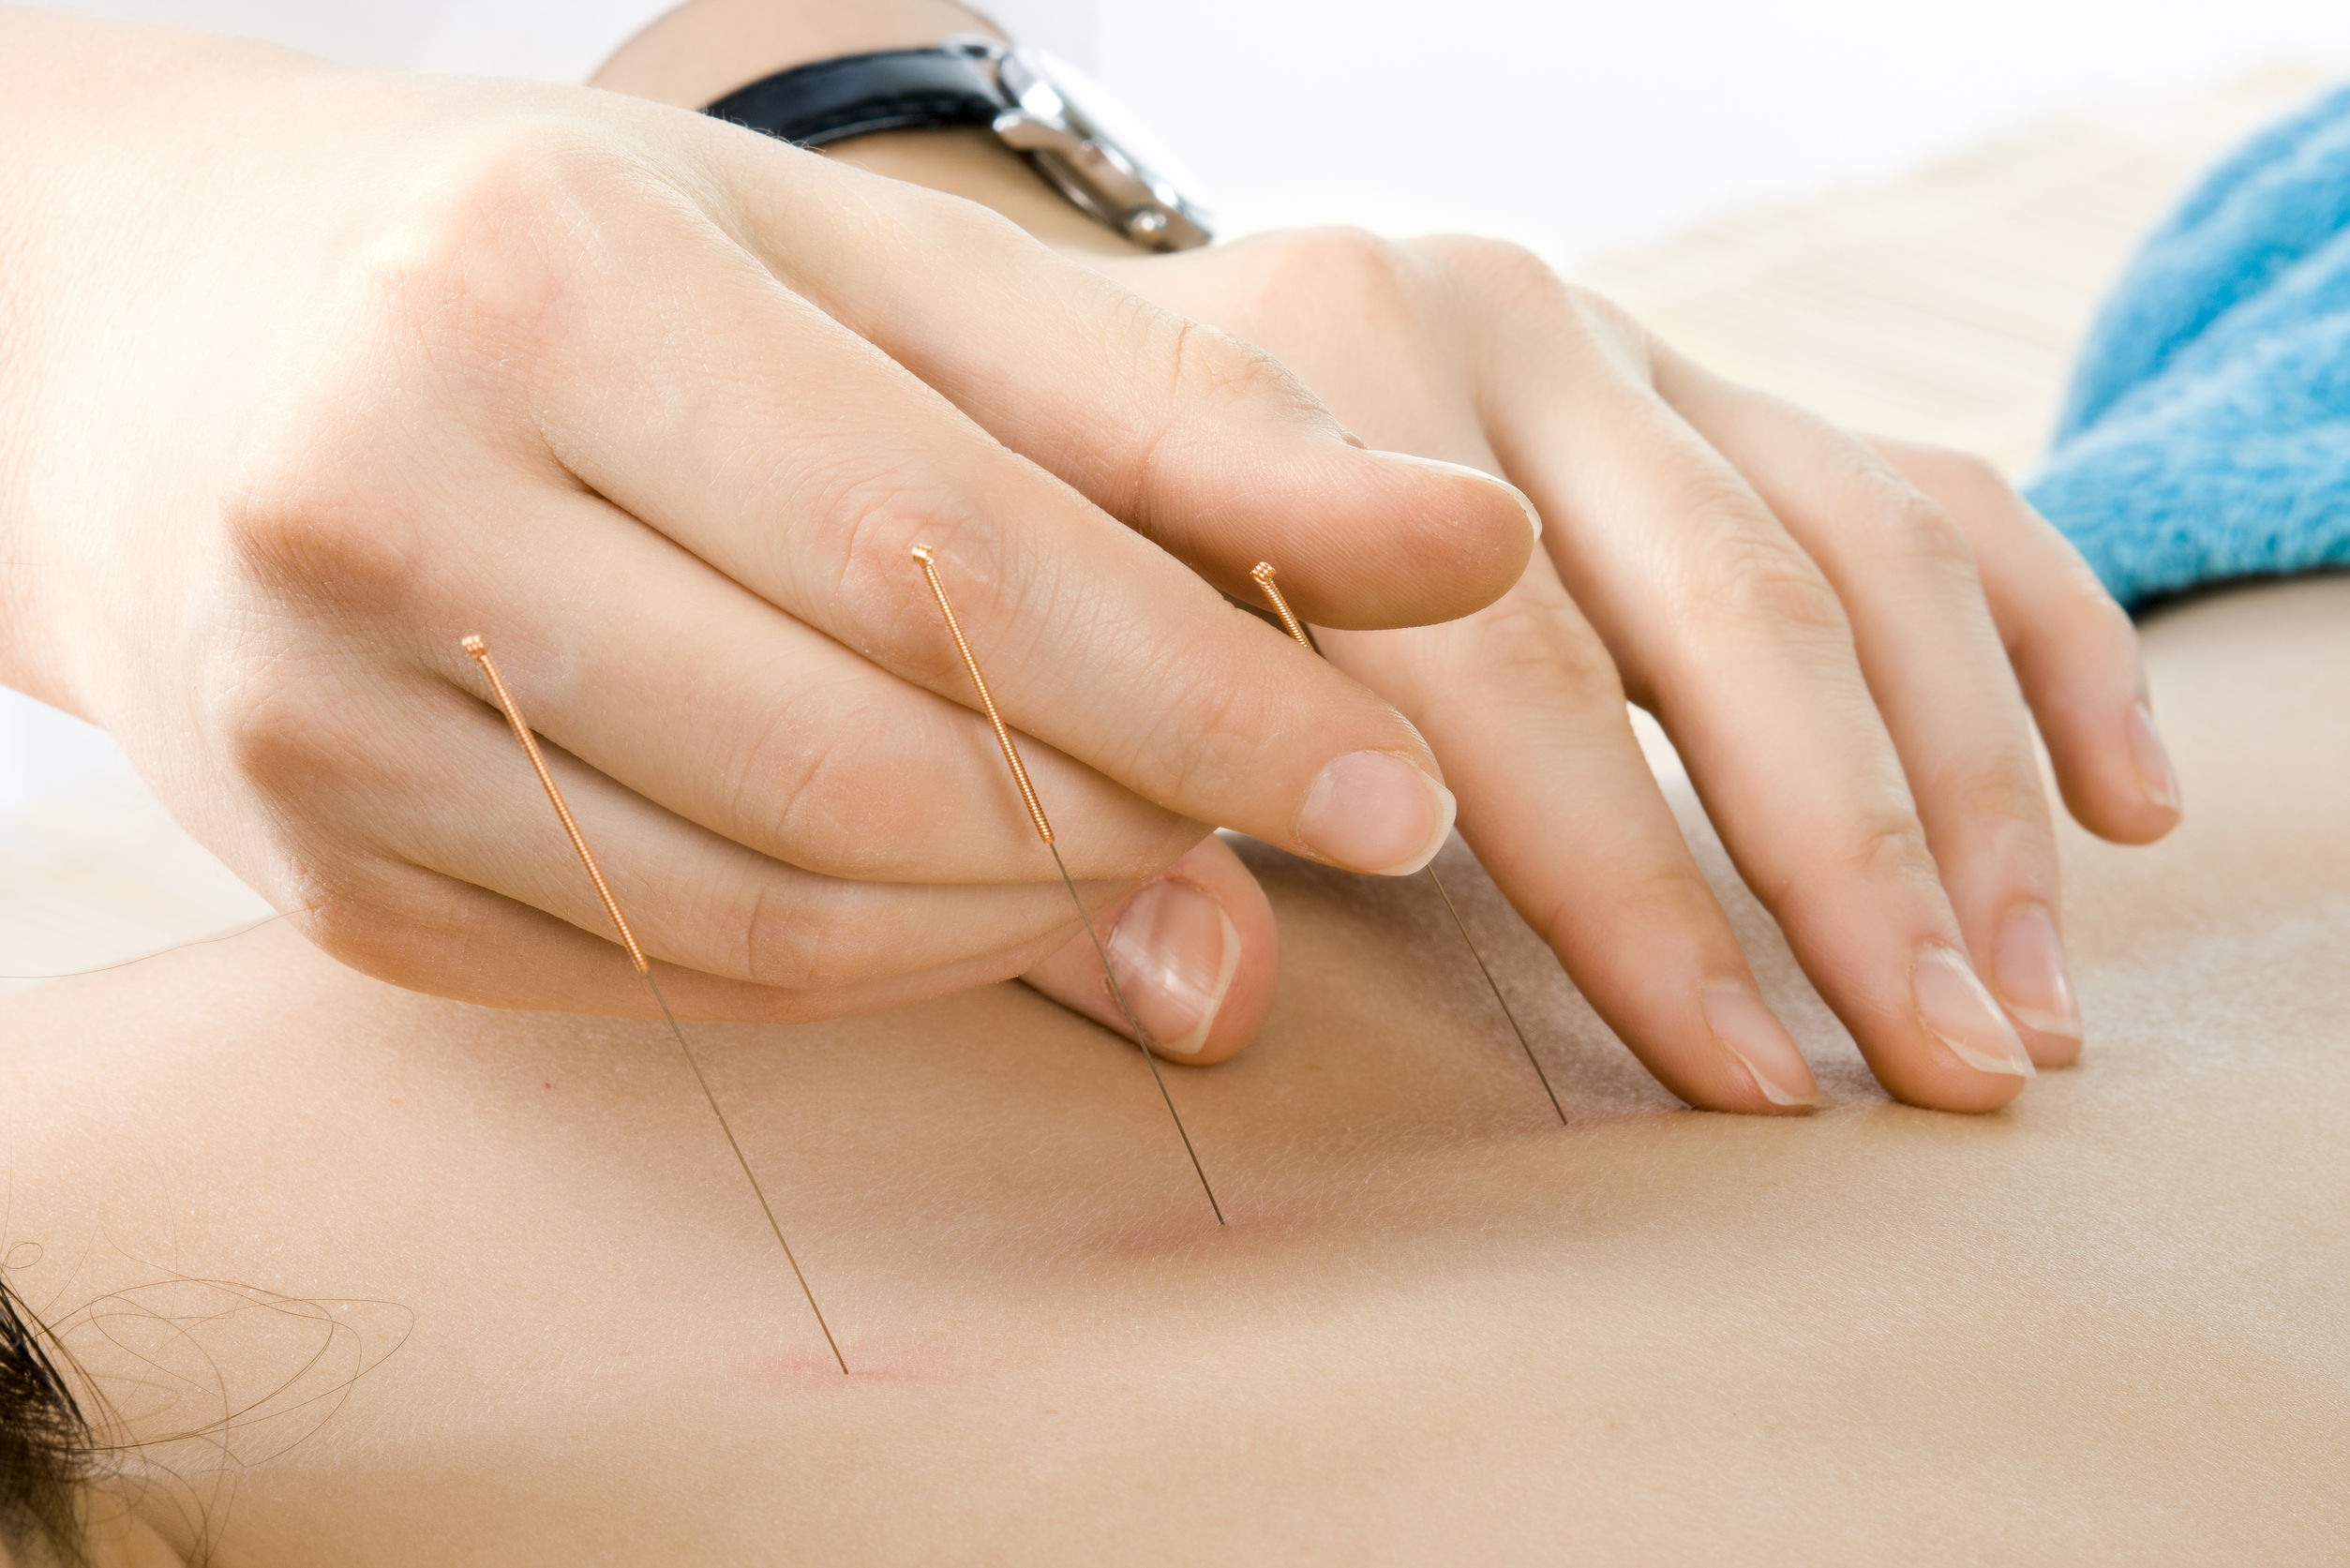 very close up acupuncture treatment , horizontal photo